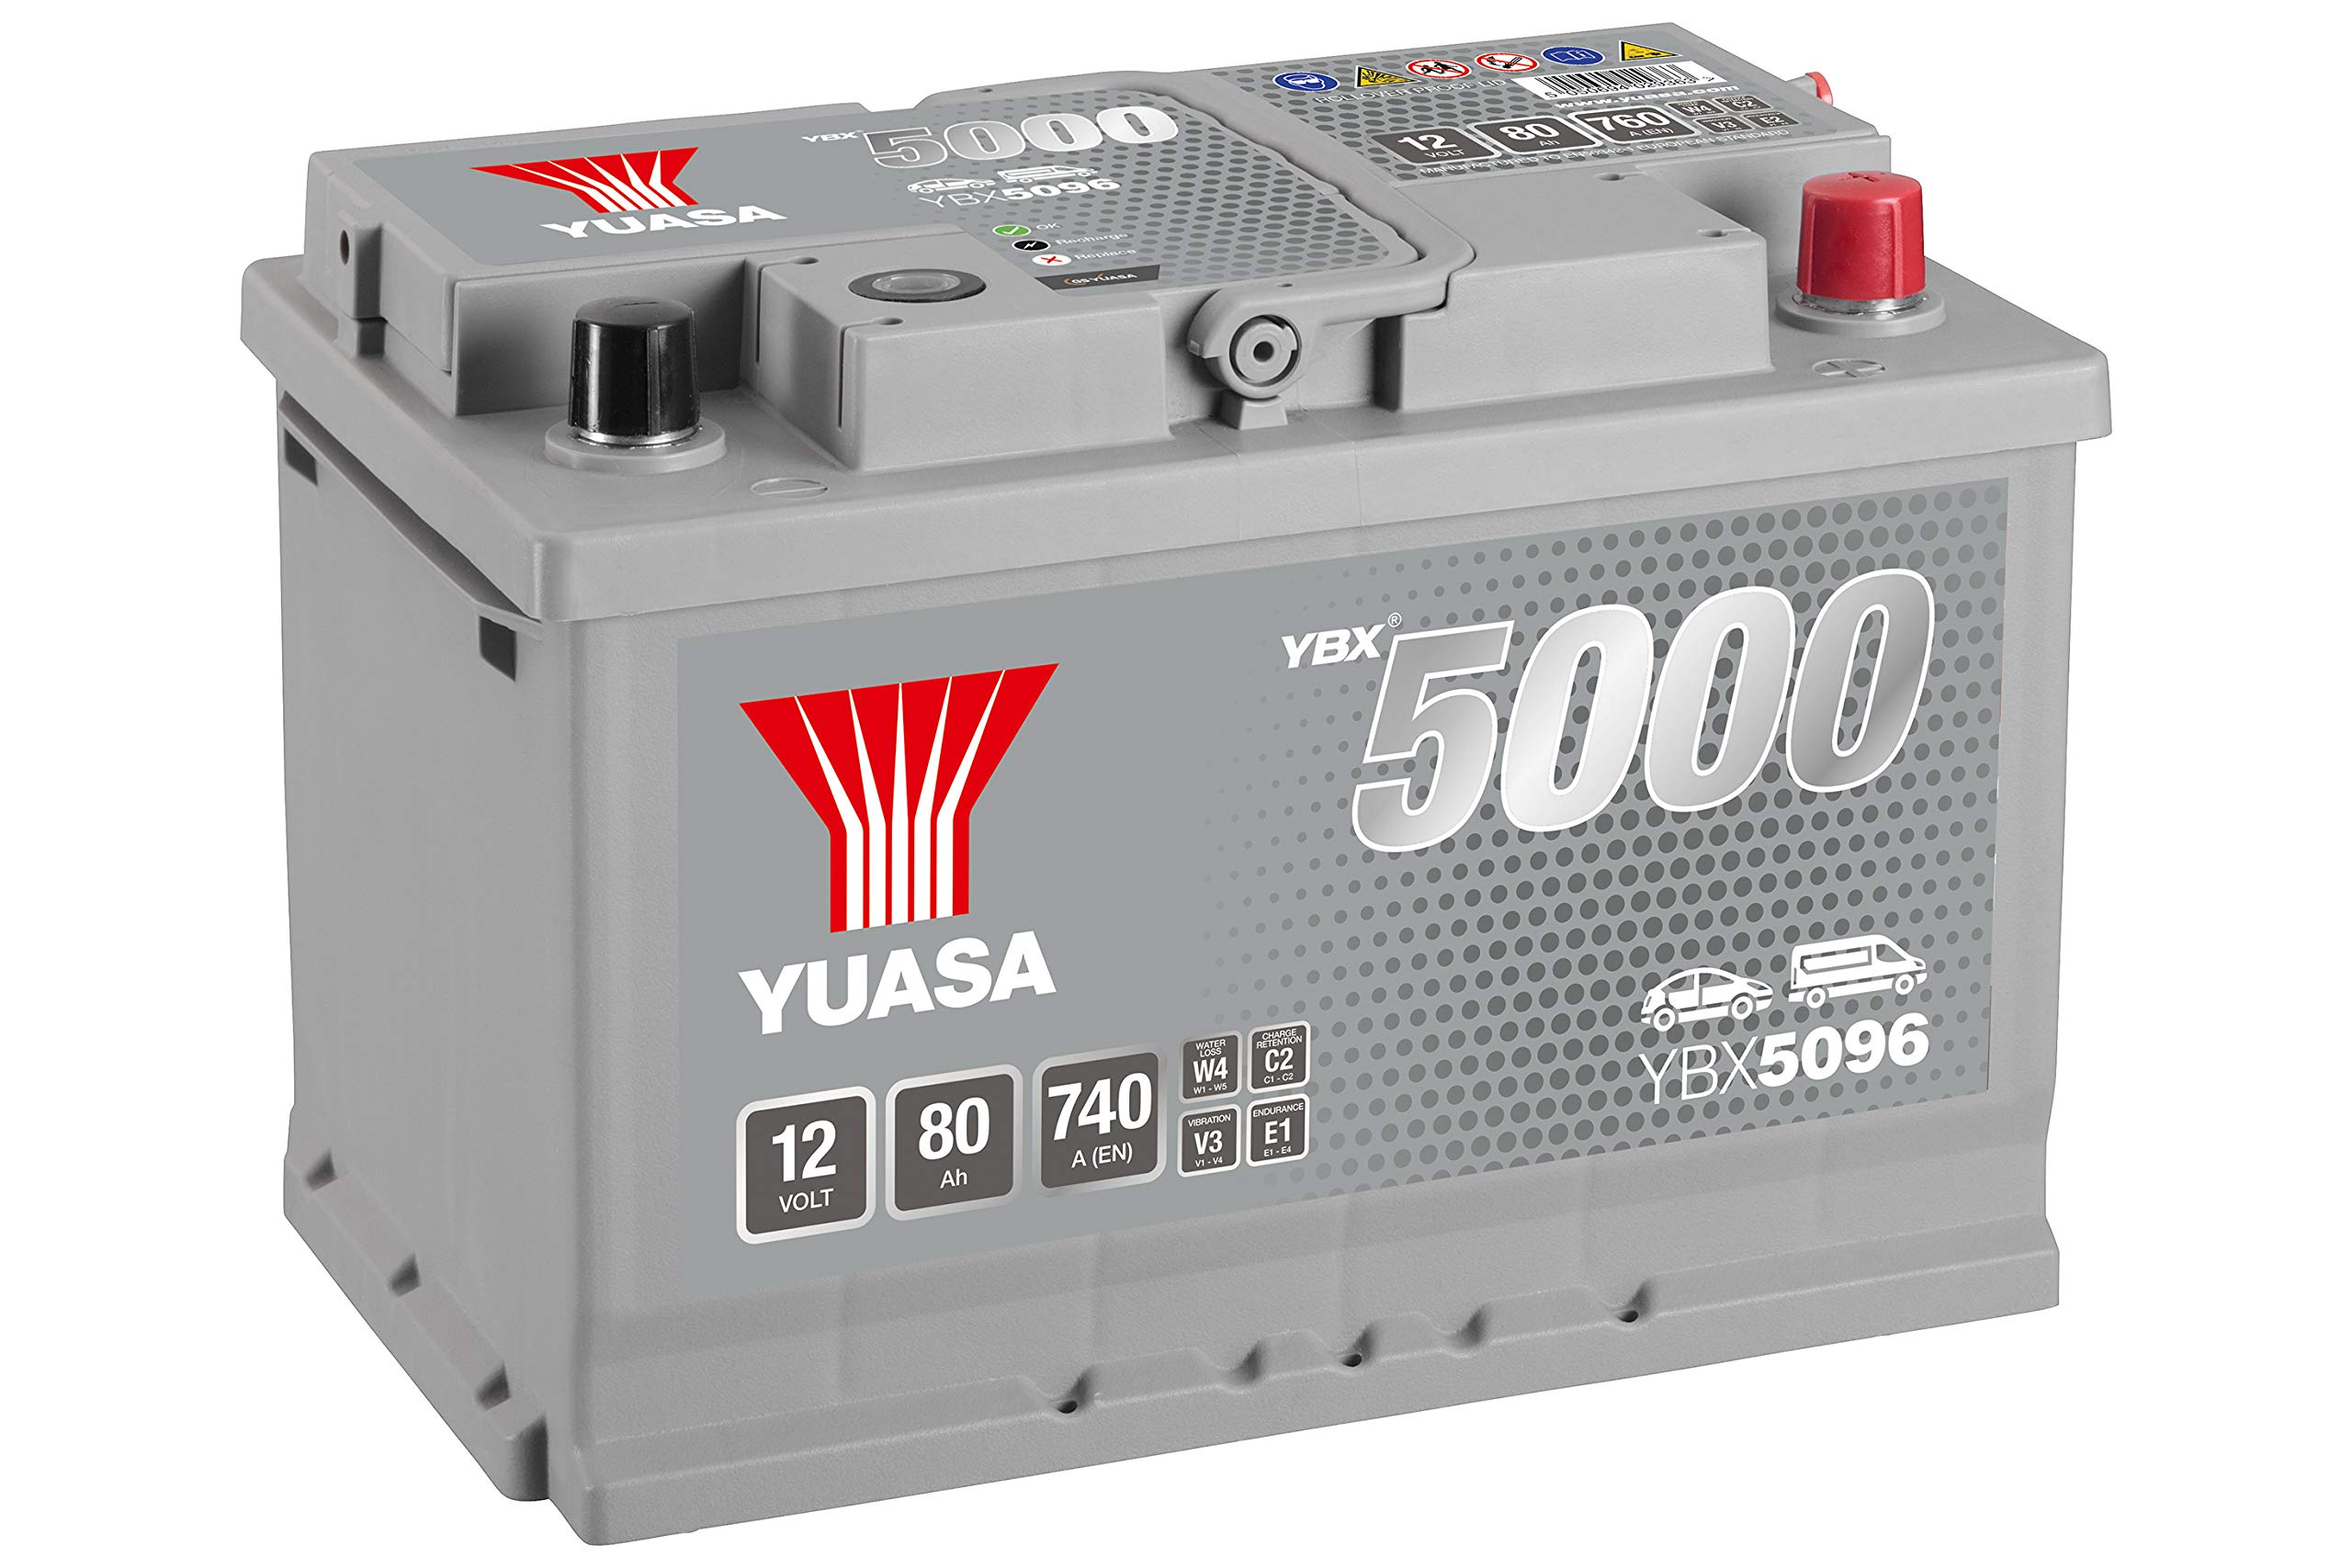 Yuasa YBX5096 12V 80Ah 740A Silver High Performance Battery